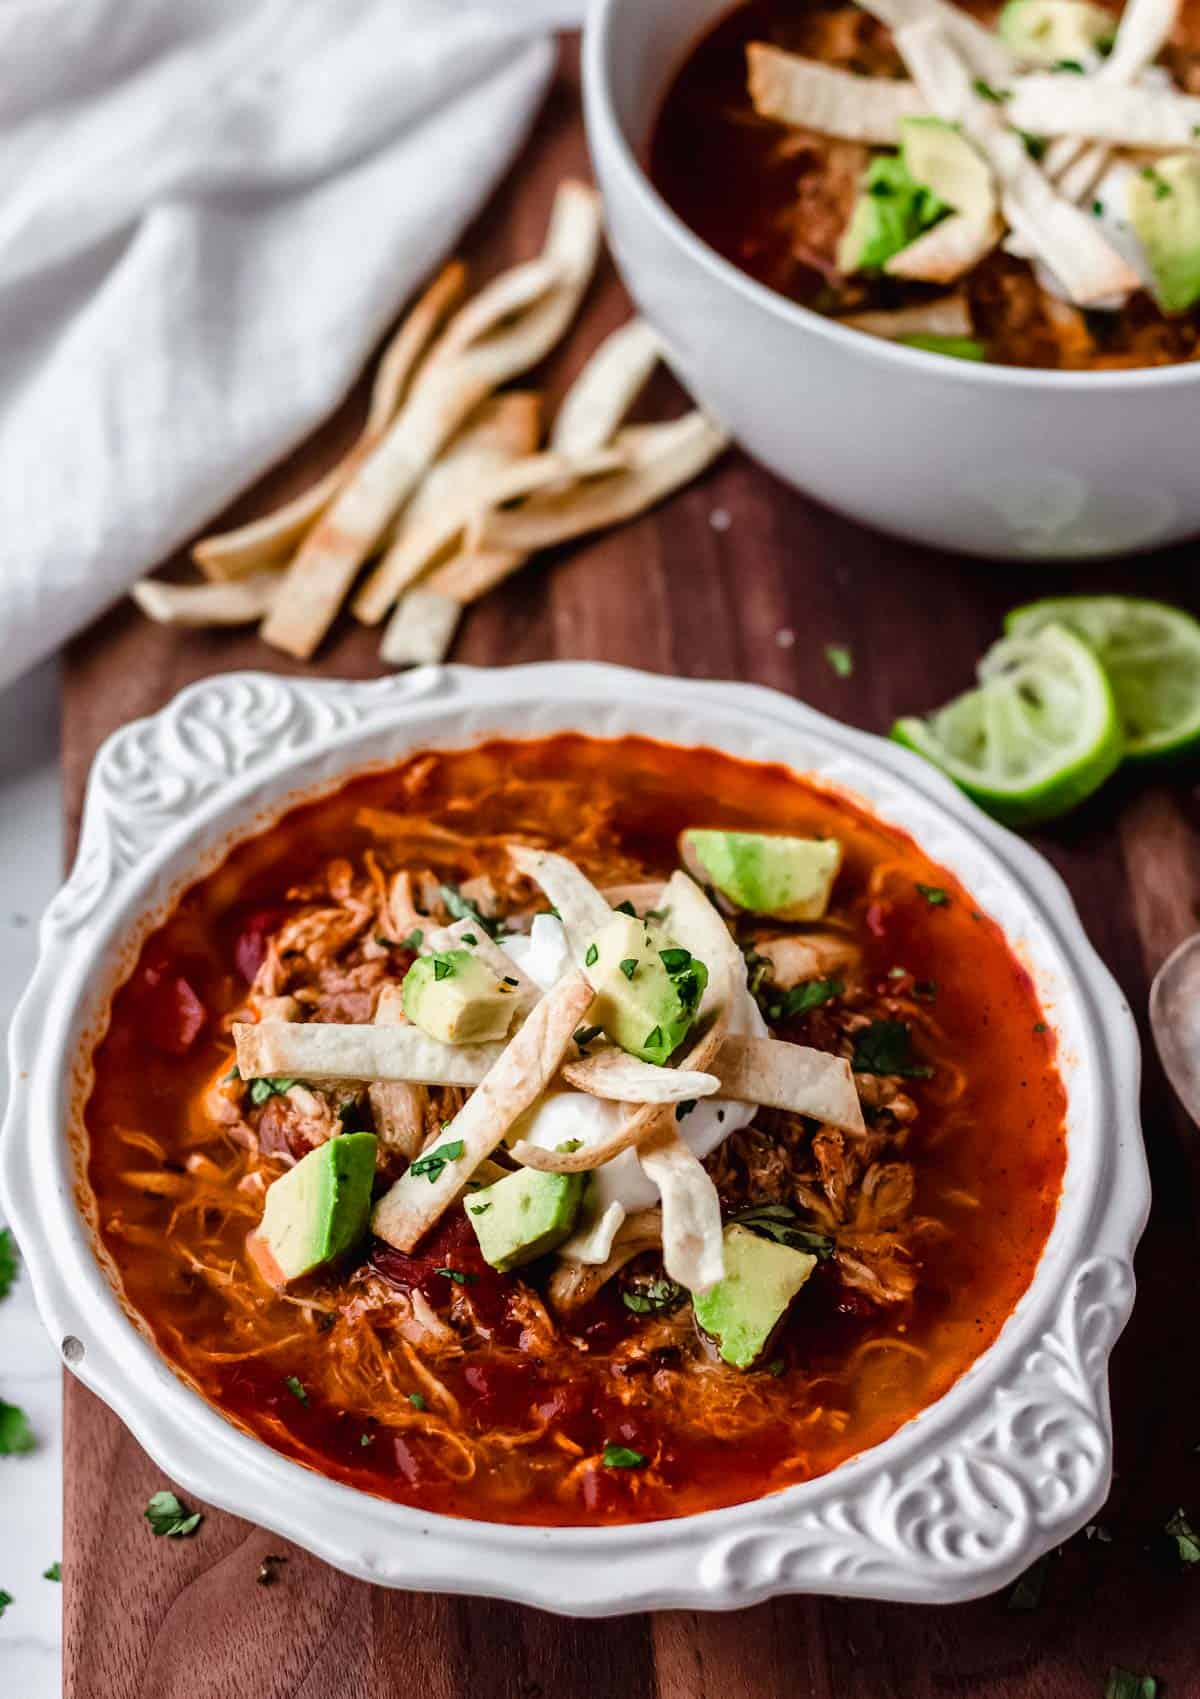 Keto Chicken Tortilla Soup in a white bowl on a wood board with lime wedges, tortilla strips, a white towel and part of a second white bowl with soup in the background